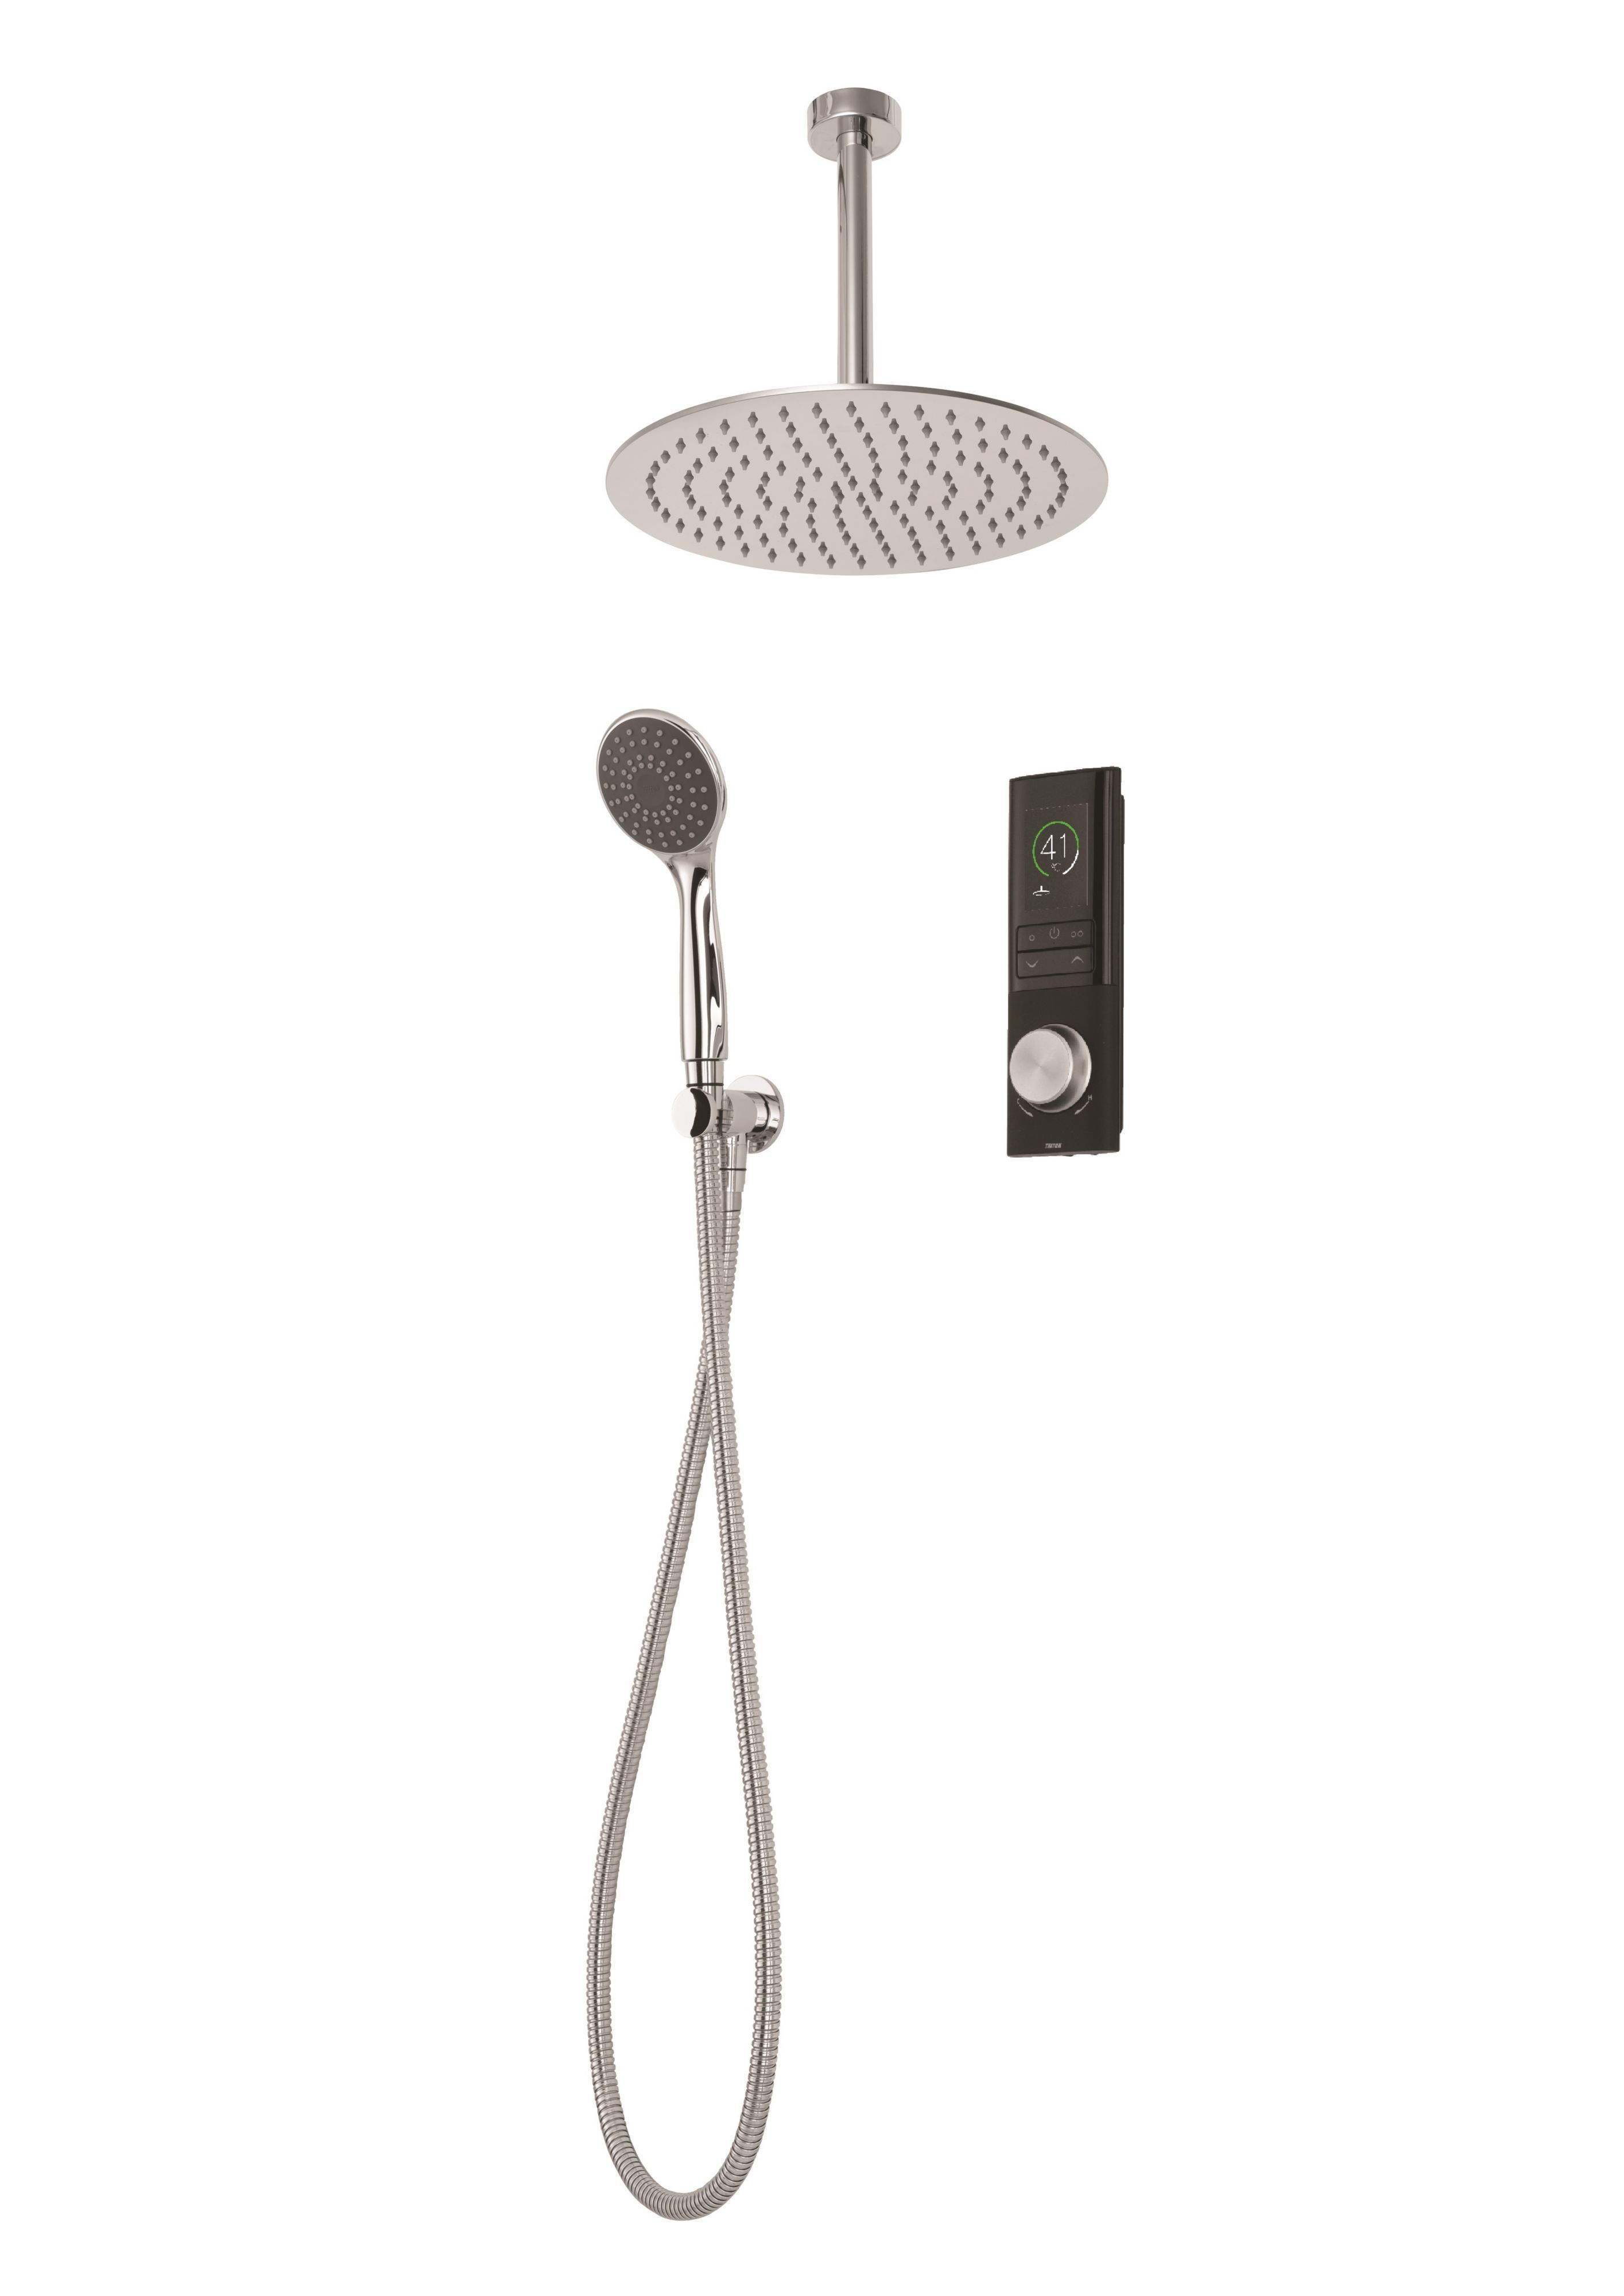 Triton Home Black Thermostatic Mixer Shower With Round Fixed Head Diverter